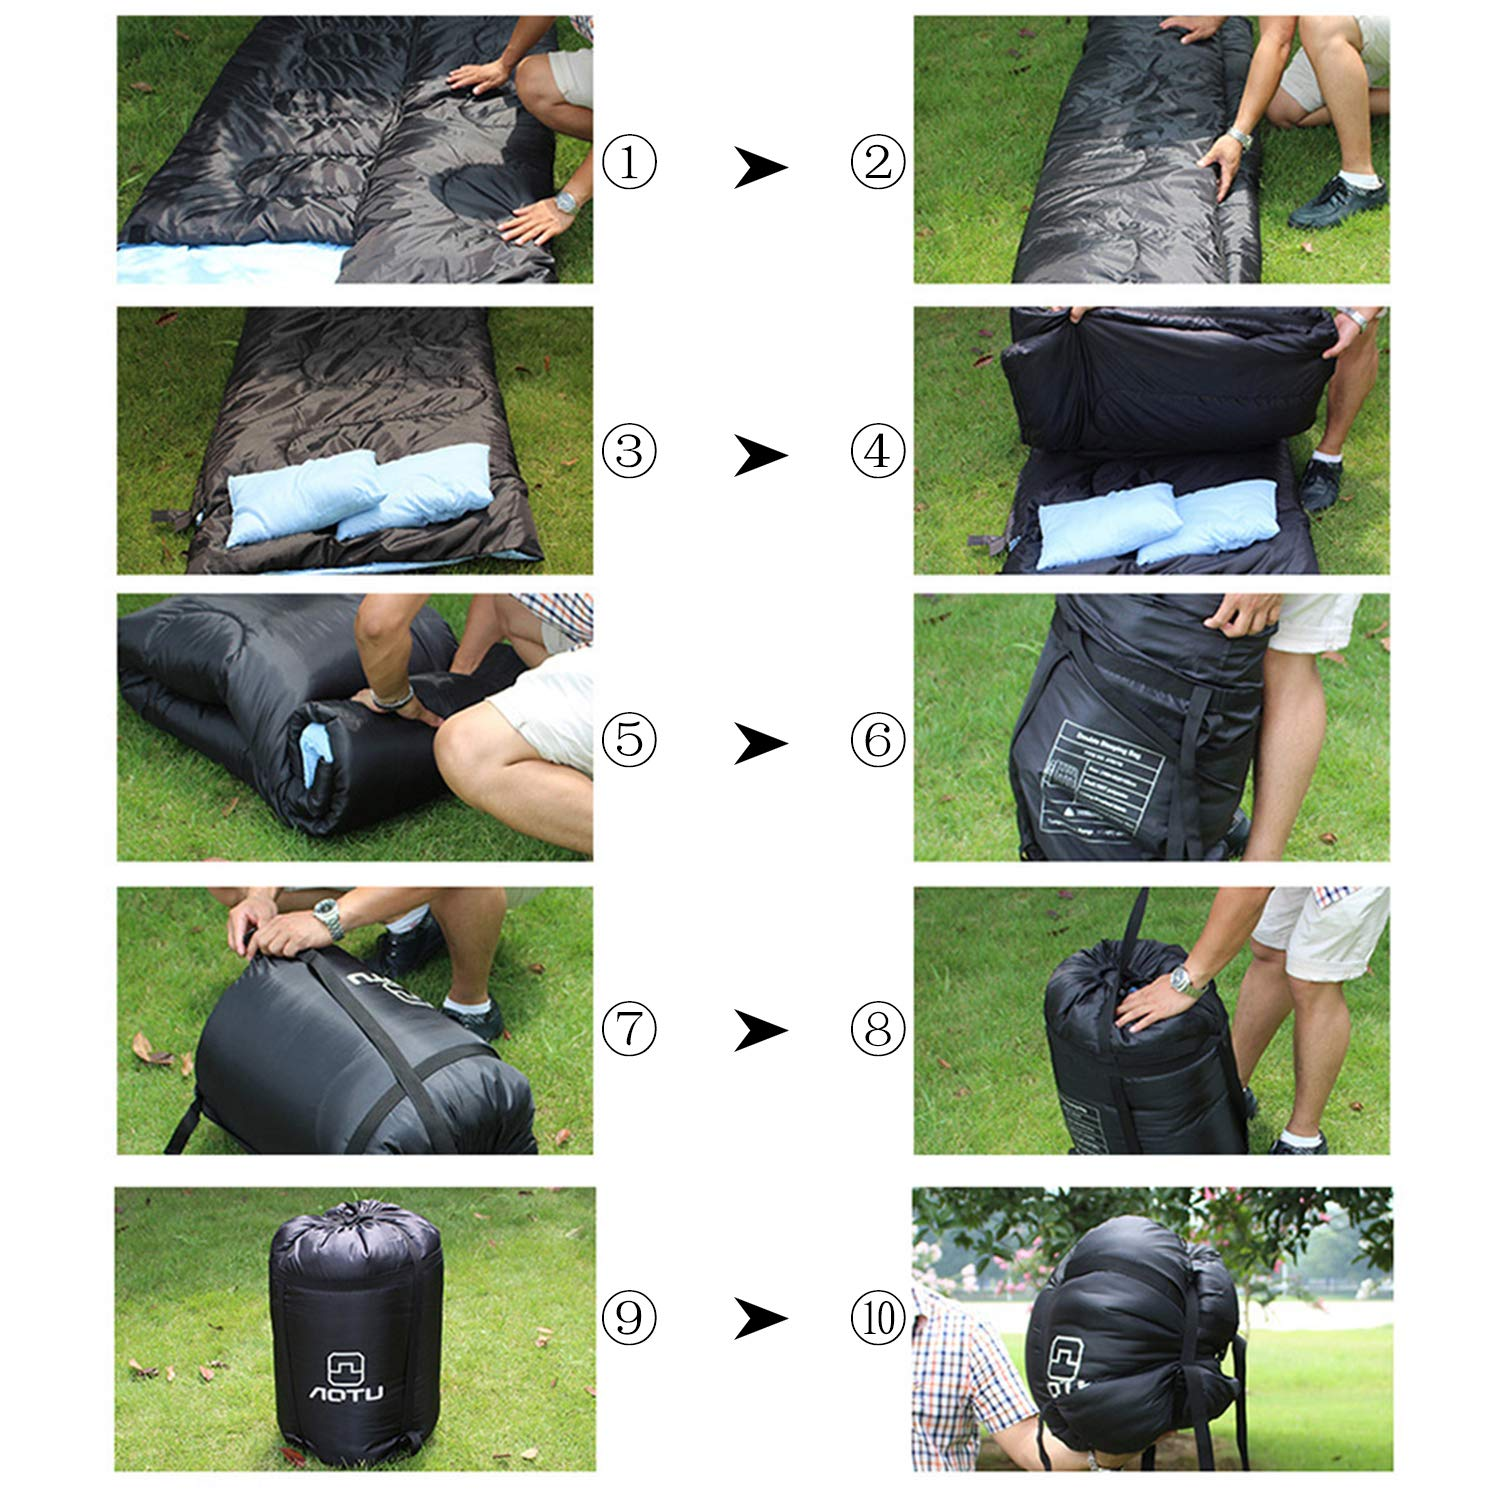 OUTAD Double Sleeping Bag for Adults with Pillows and a Carry Bag Lightweight Sleeping Bag For Outdoor Camping Hiking